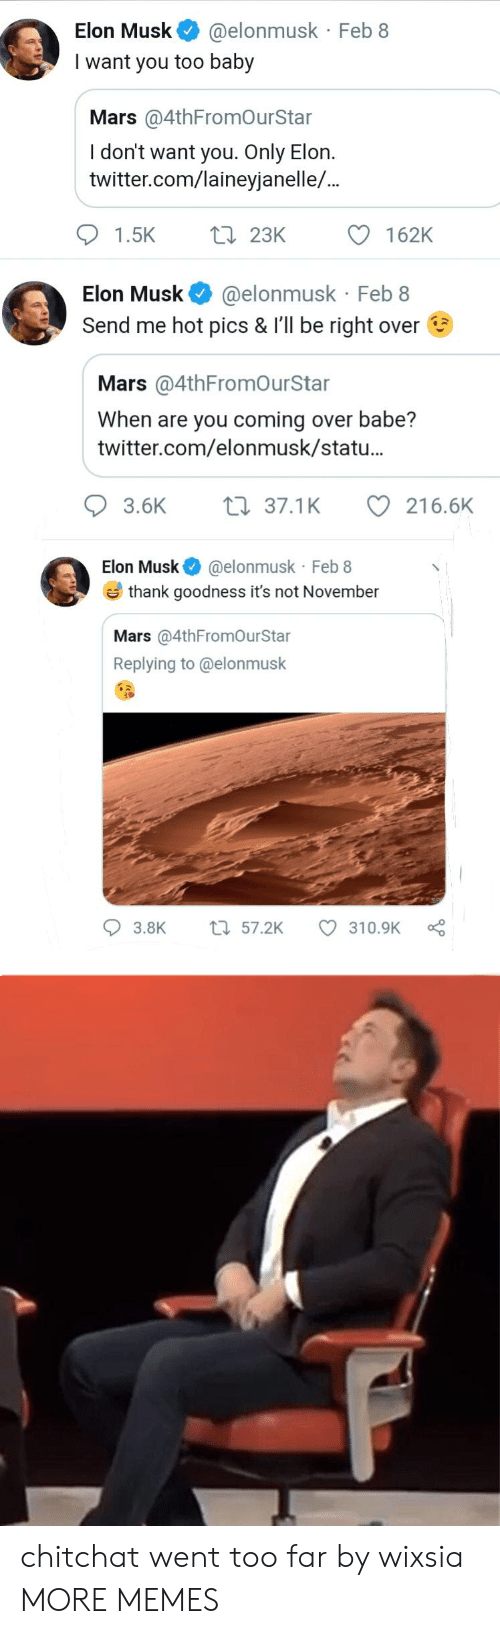 Dank, Memes, and Target: Elon Musk @elonmusk Feb 8  I want you too baby  Mars @4thFromOurStar  I don't want you. Only Elon.  twitter.com/laineyjanelle/..  162K  Li 23K  1.5K  @elonmusk Feb 8  Send me hot pics & I'll be right over  Elon Musk  Mars @4thFromOurStar  When are you coming over babe?  twitter.com/elonmusk/statu...  216.6K  3.6K  37.1K  Elon Musk @elonmusk Feb 8  thank goodness it's not November  Mars @4thFromOurStar  Replying to @elonmusk  t57.2K  3.8K  310.9K chitchat went too far by wixsia MORE MEMES